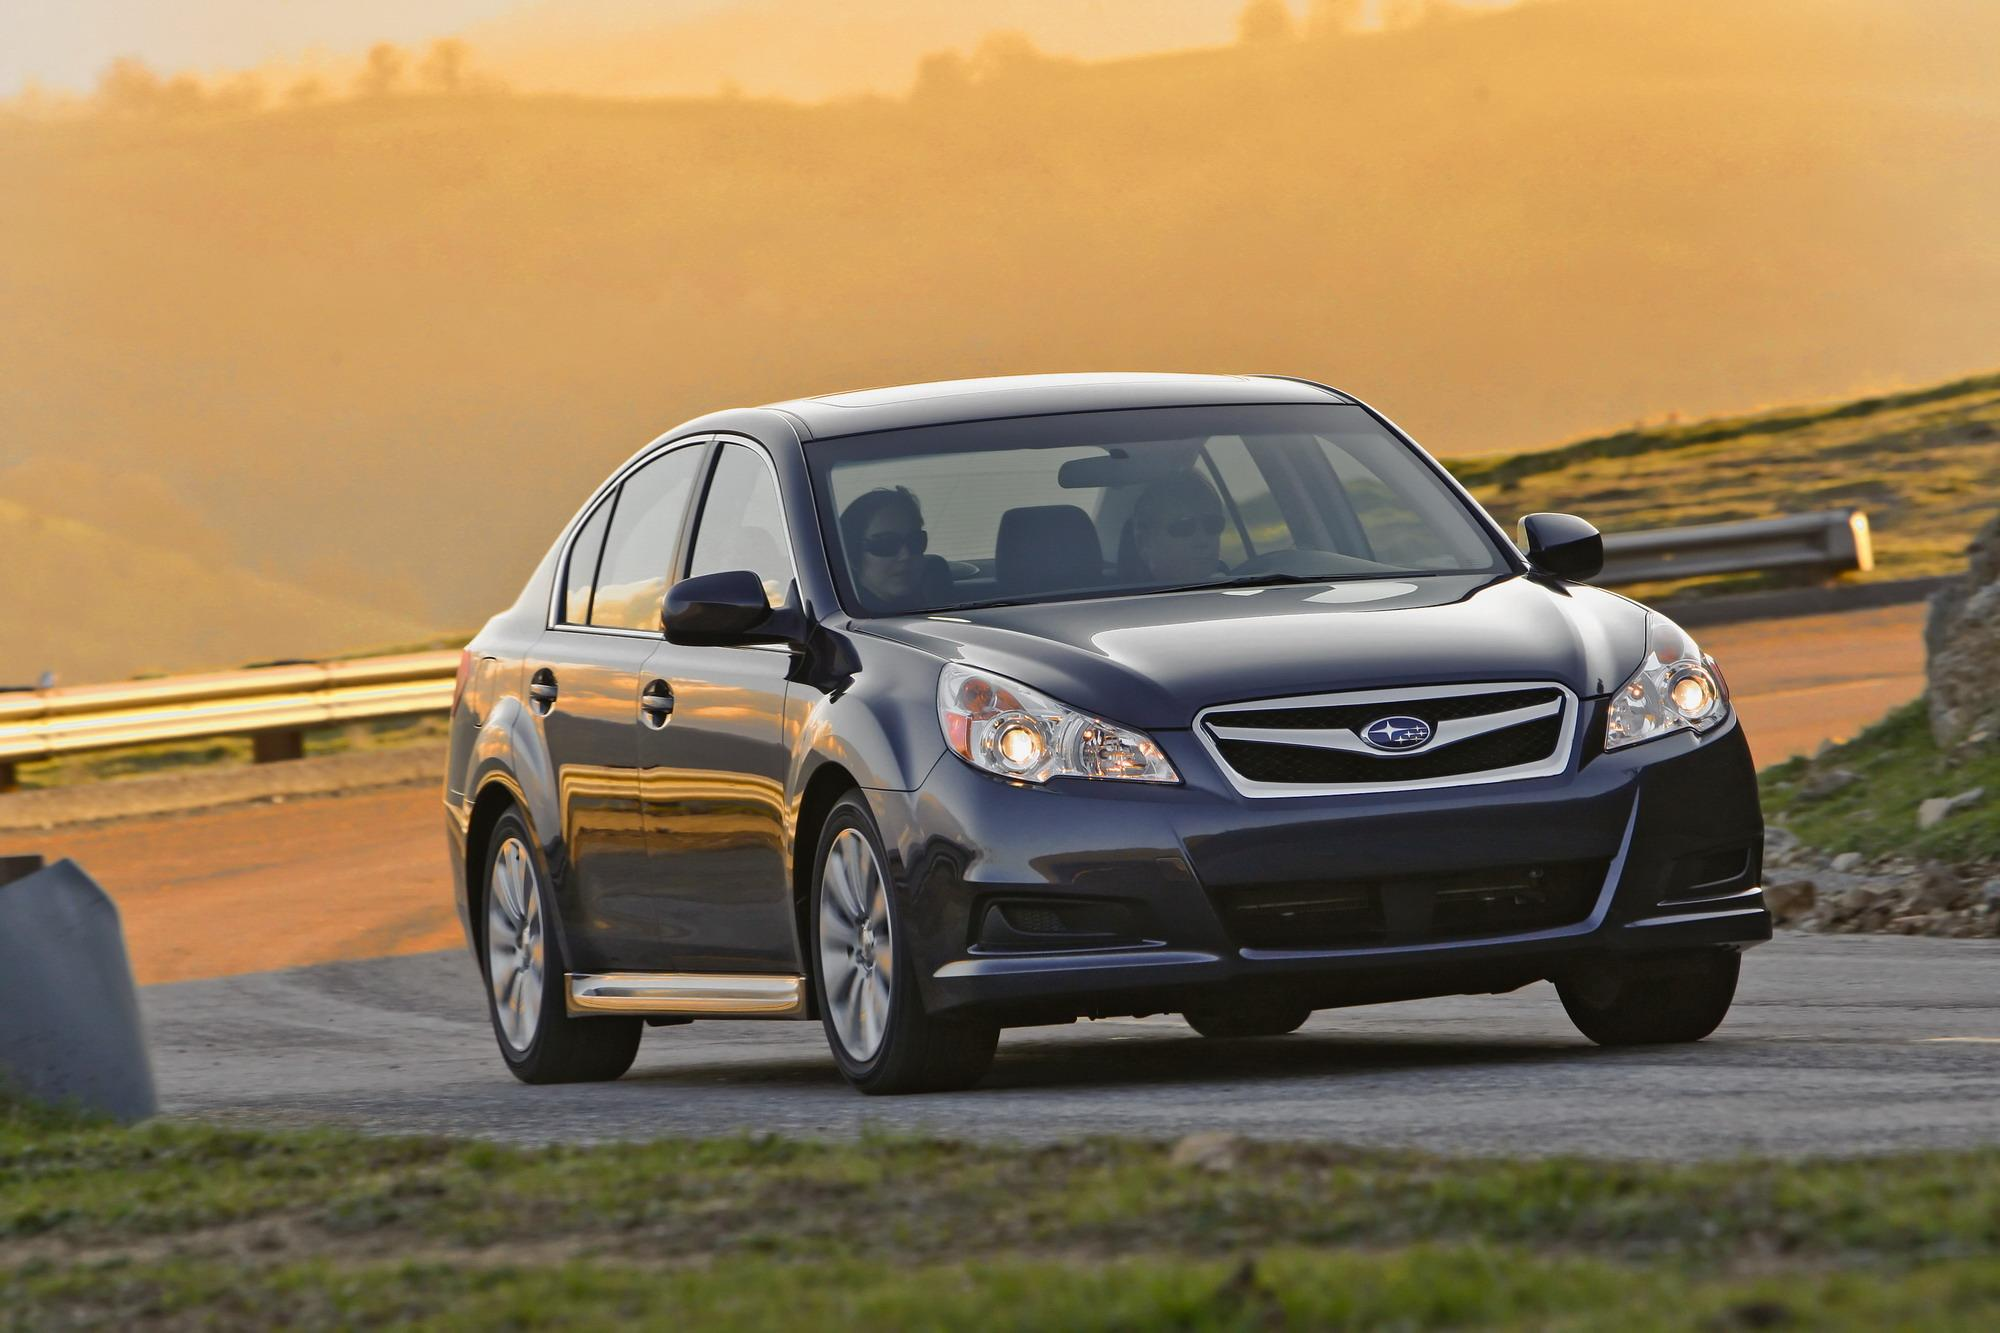 Subaru Legacy: To increase the speed (by accelerator pedal)